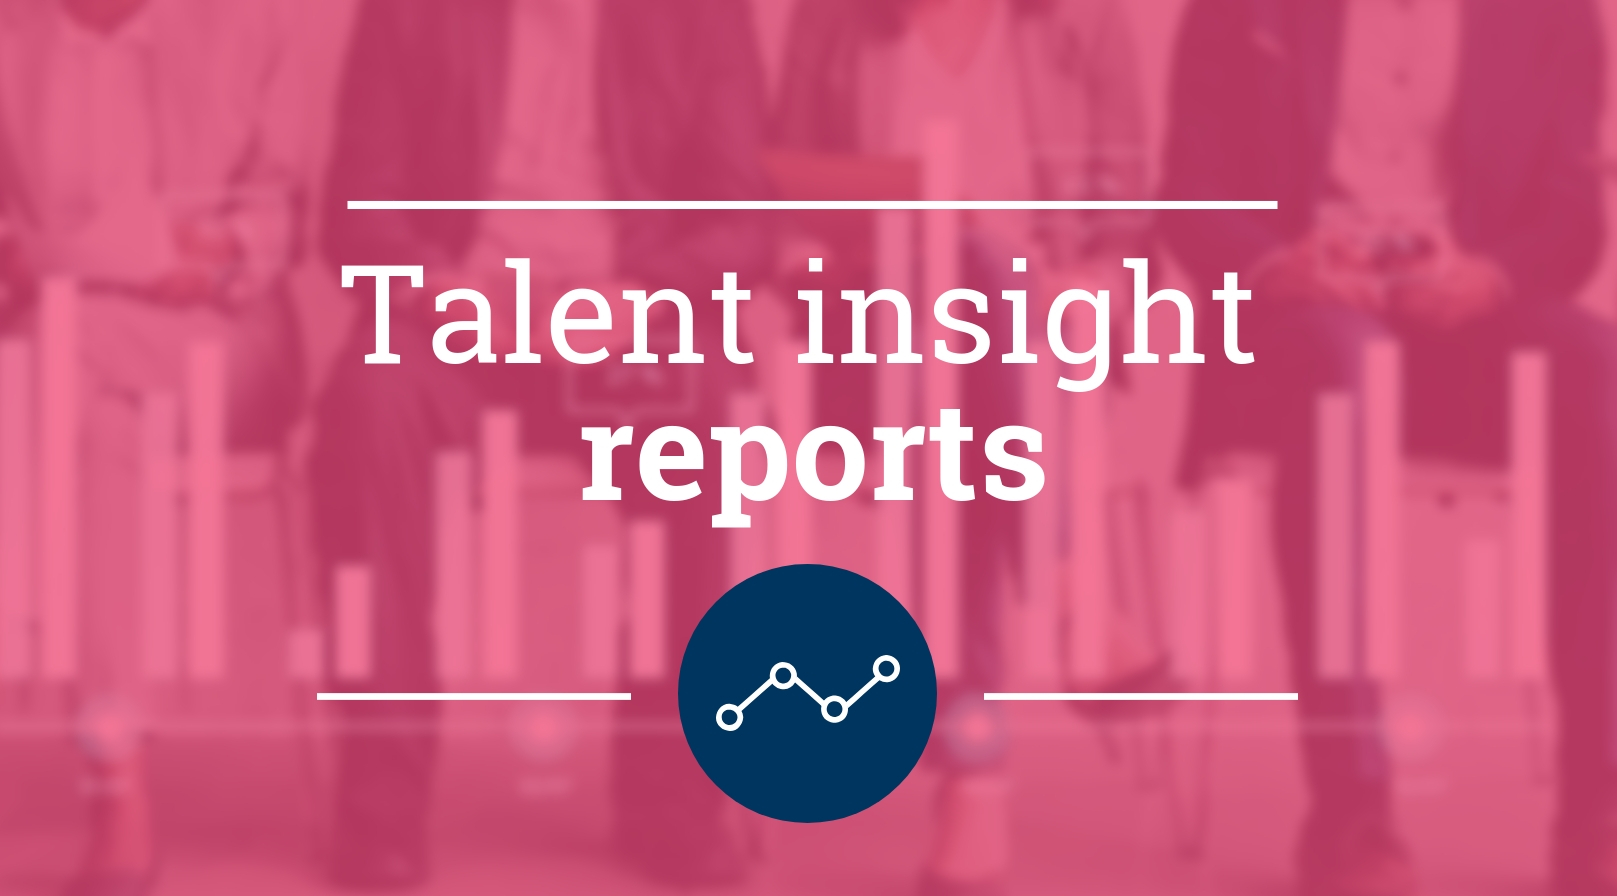 Talent insight reports